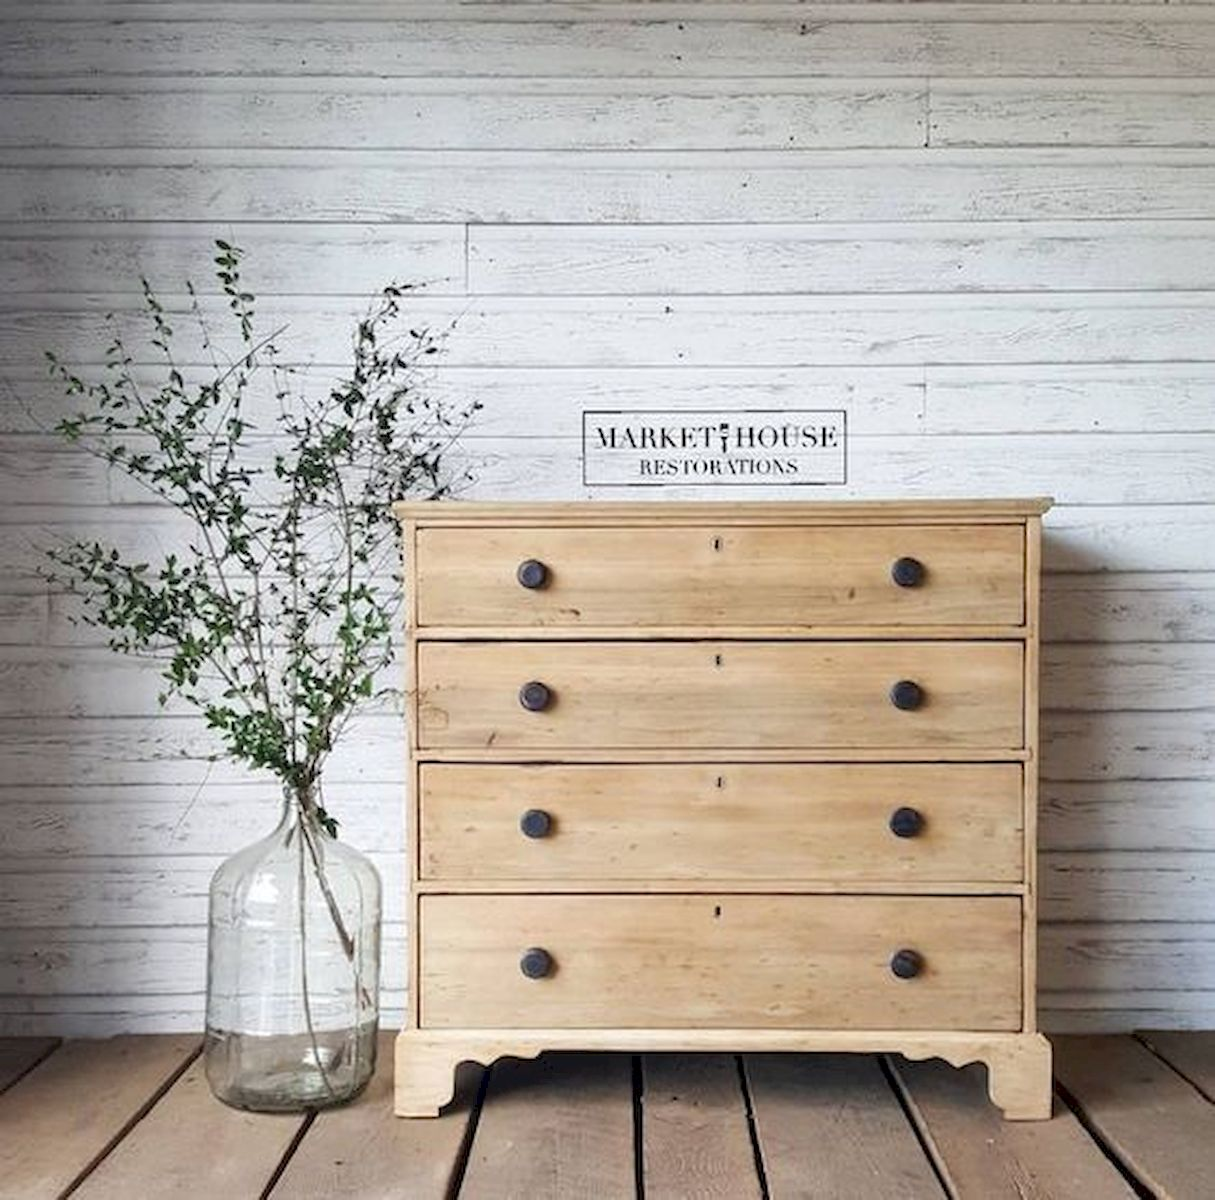 45 Awesome Furniture Ideas for Small House With Wood Project Ideas (29)